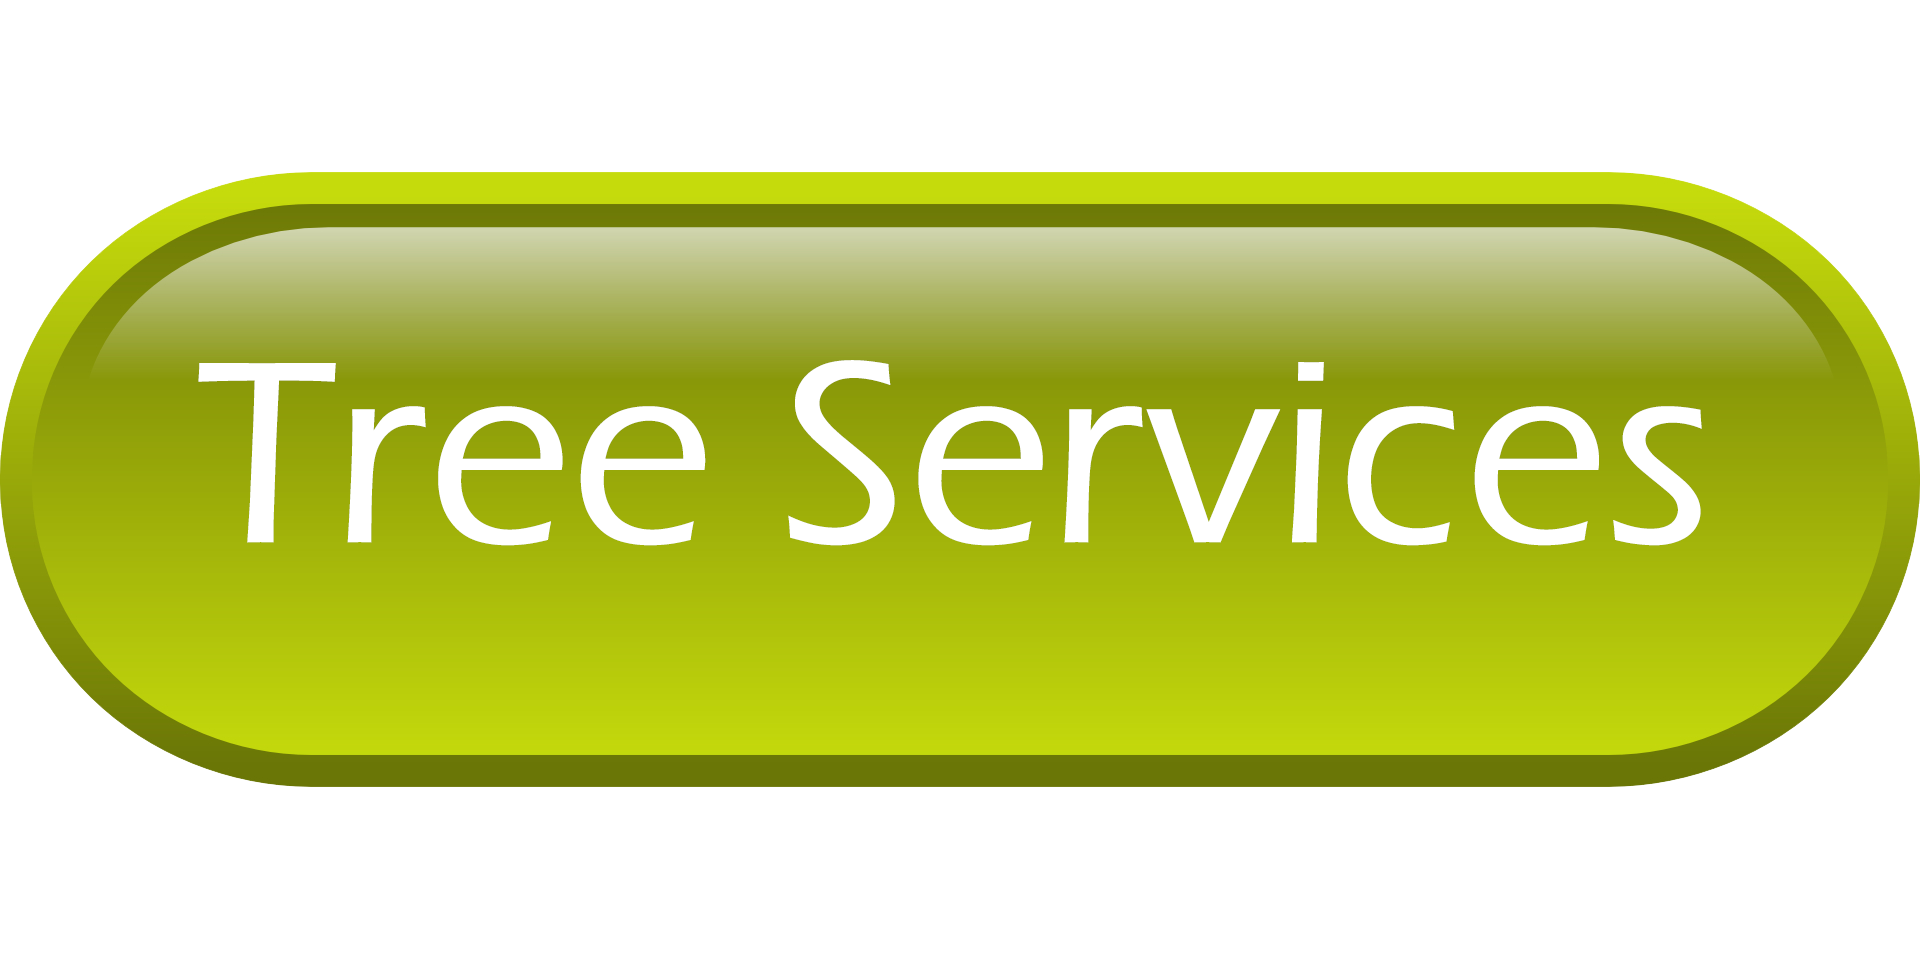 Tree Services - Urban Forest Pro Portland